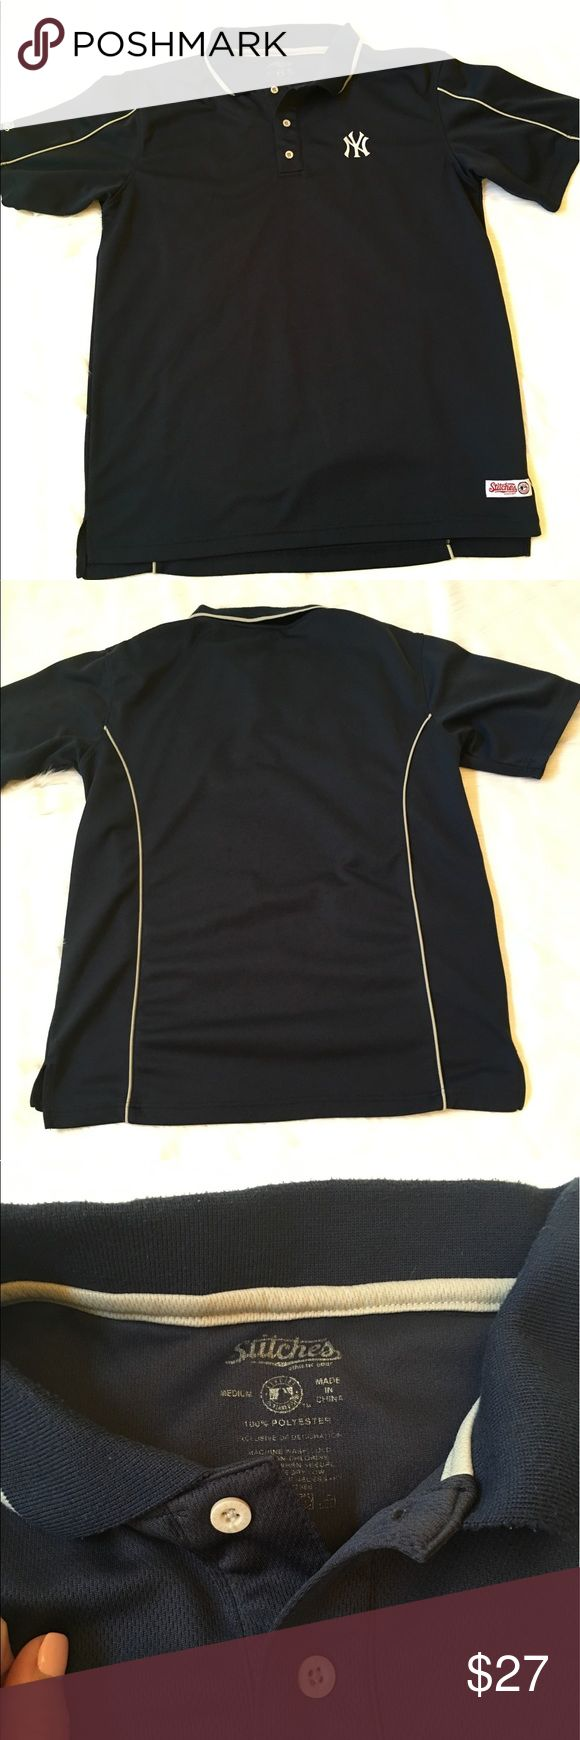 Men's Yankee Polo ❣SALE❣This is a Men's New York Yankee Polo in GUC. No stains or rips but has light pilling on the collar only. It's a dark navy blue with a light tan contrast piping on sleeves, back and collar. Material is 100% polyester. ❗PRICE FIRM❗ Stitches Shirts Polos